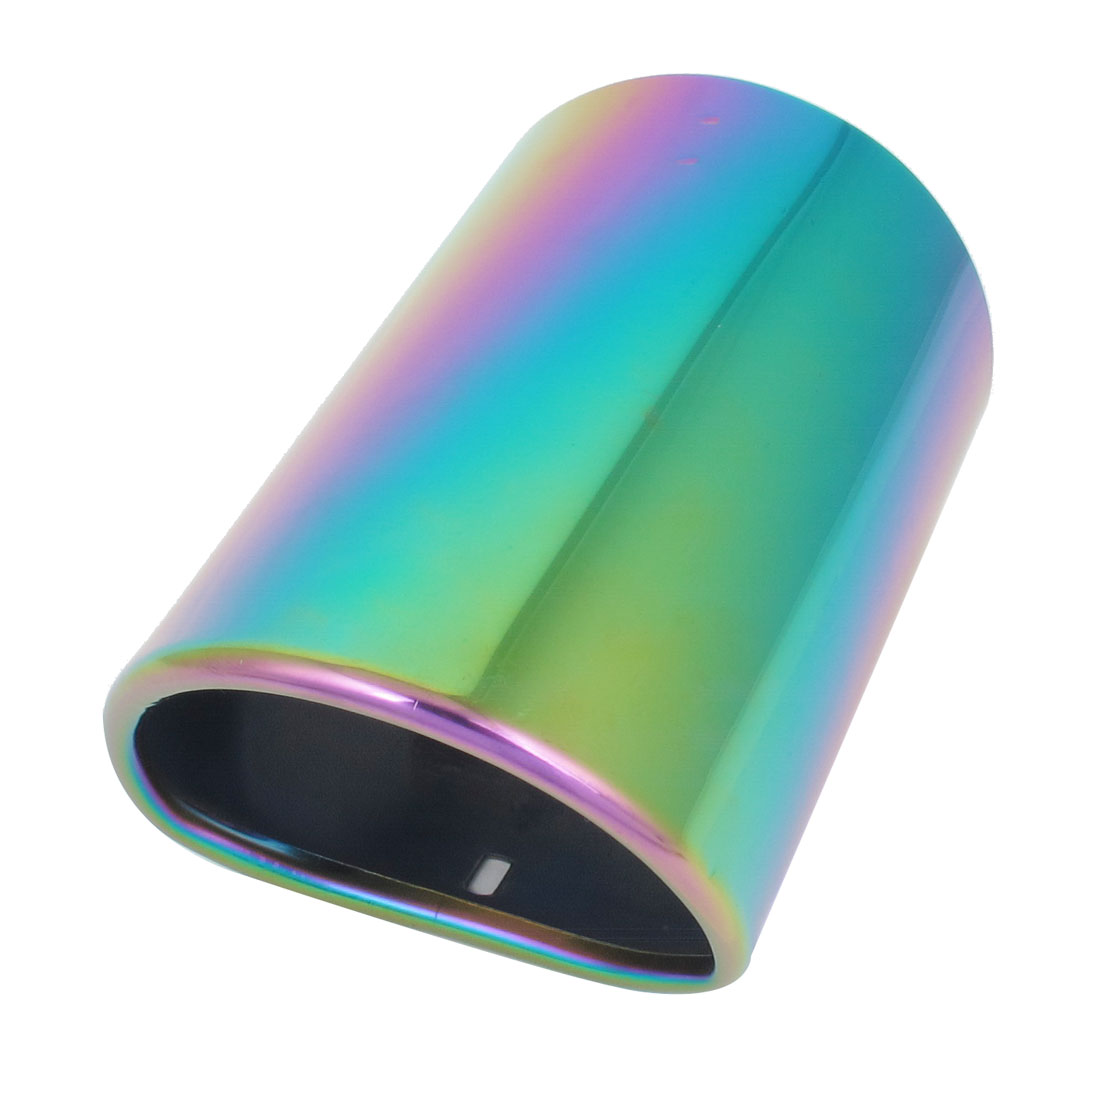 95mm Inlet Dia Colorful Stainless Steel Exhaust Muffler Pipe Tip for Audi Q5